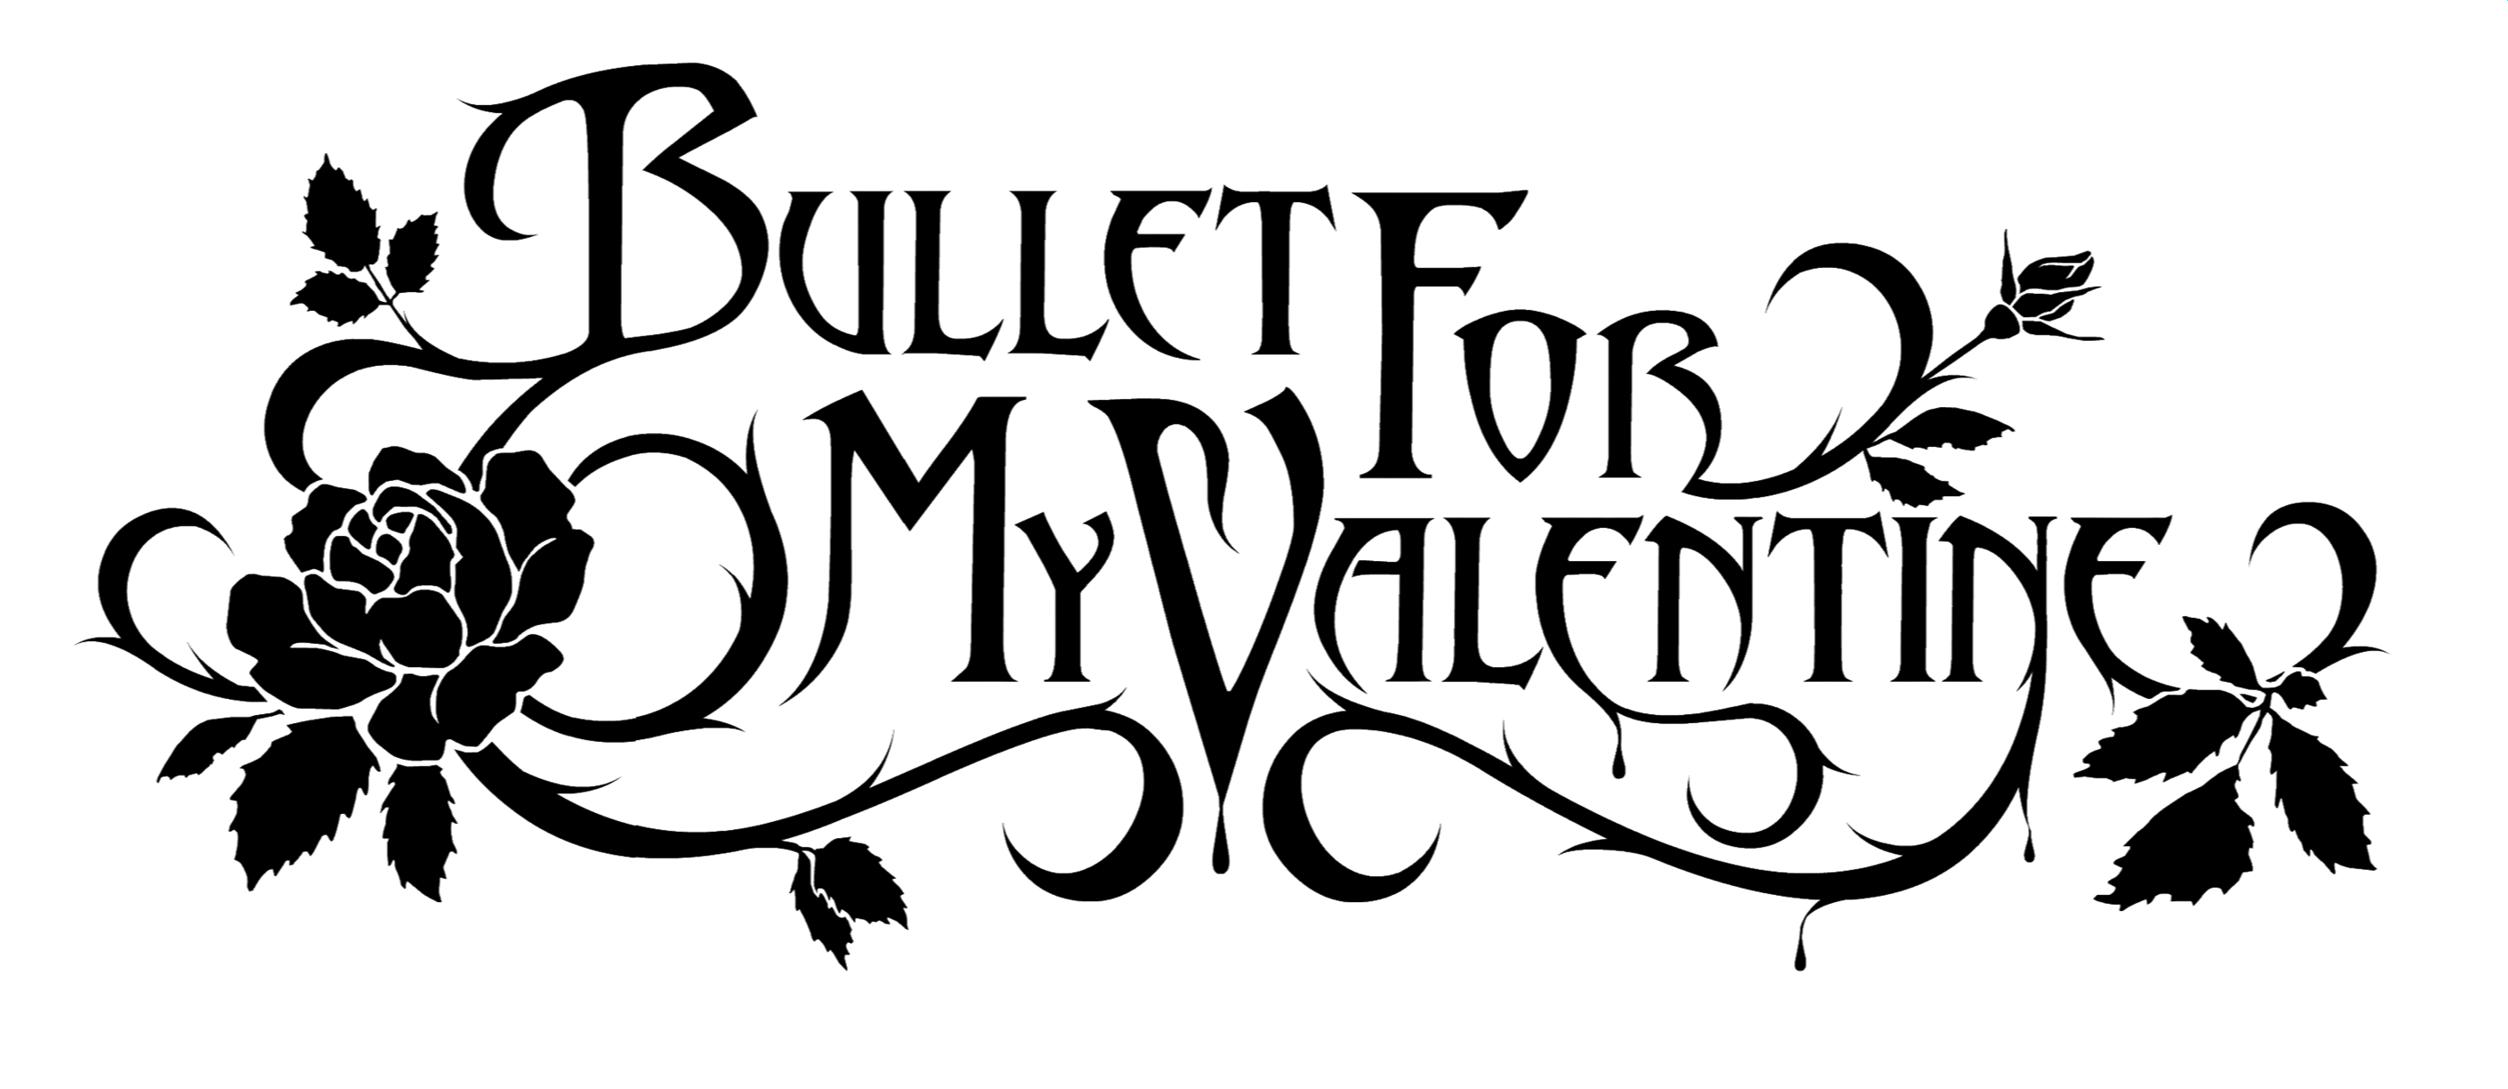 Bullet For My Valentine Logo Wallpaper